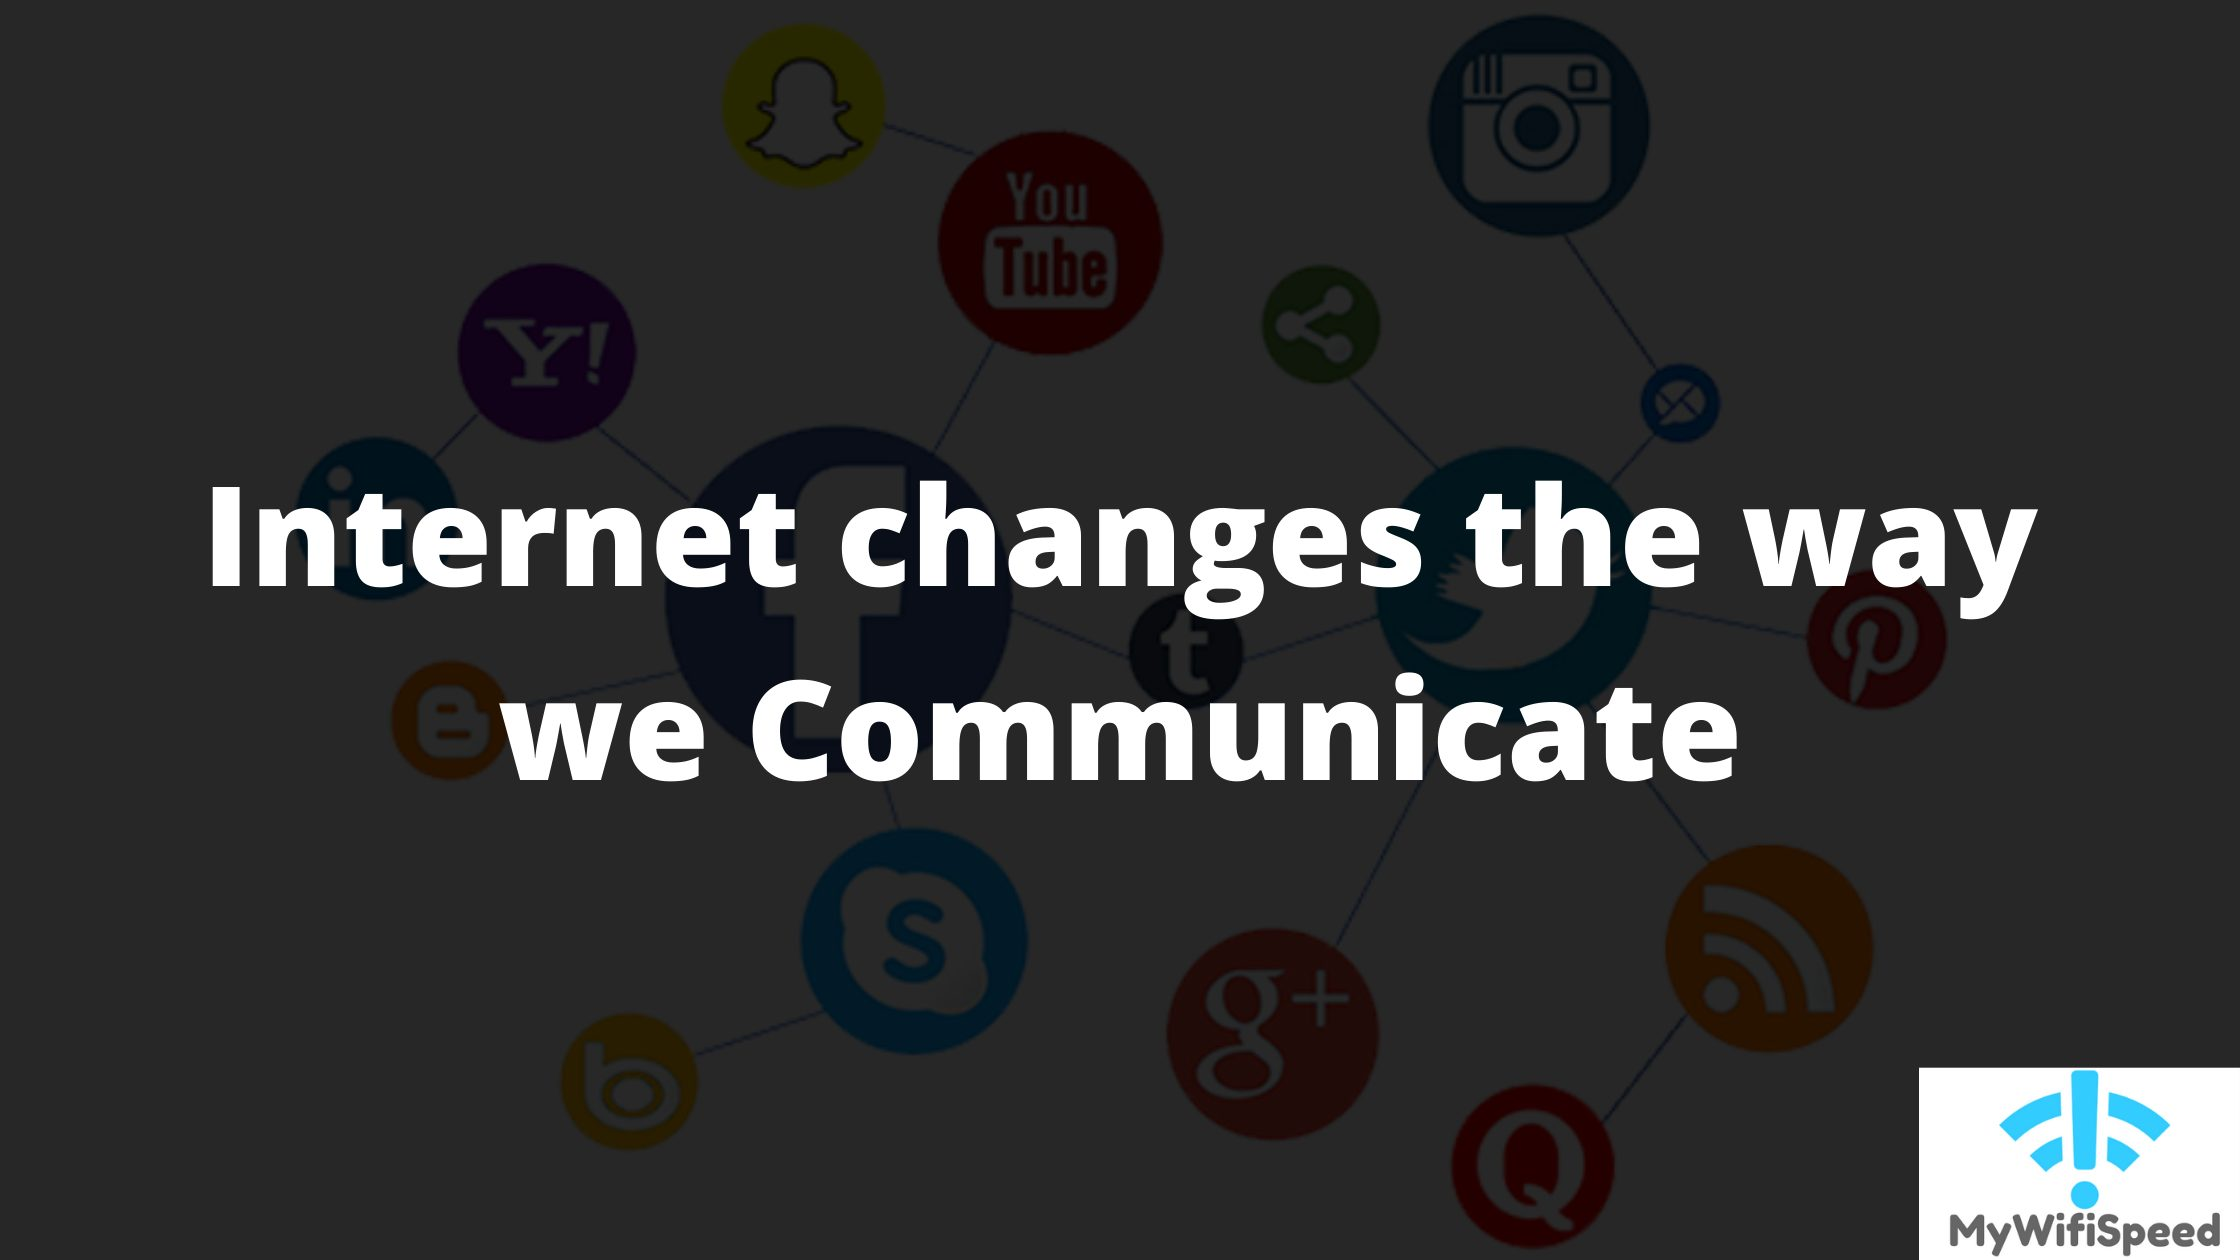 Internet changes the way we Communicate